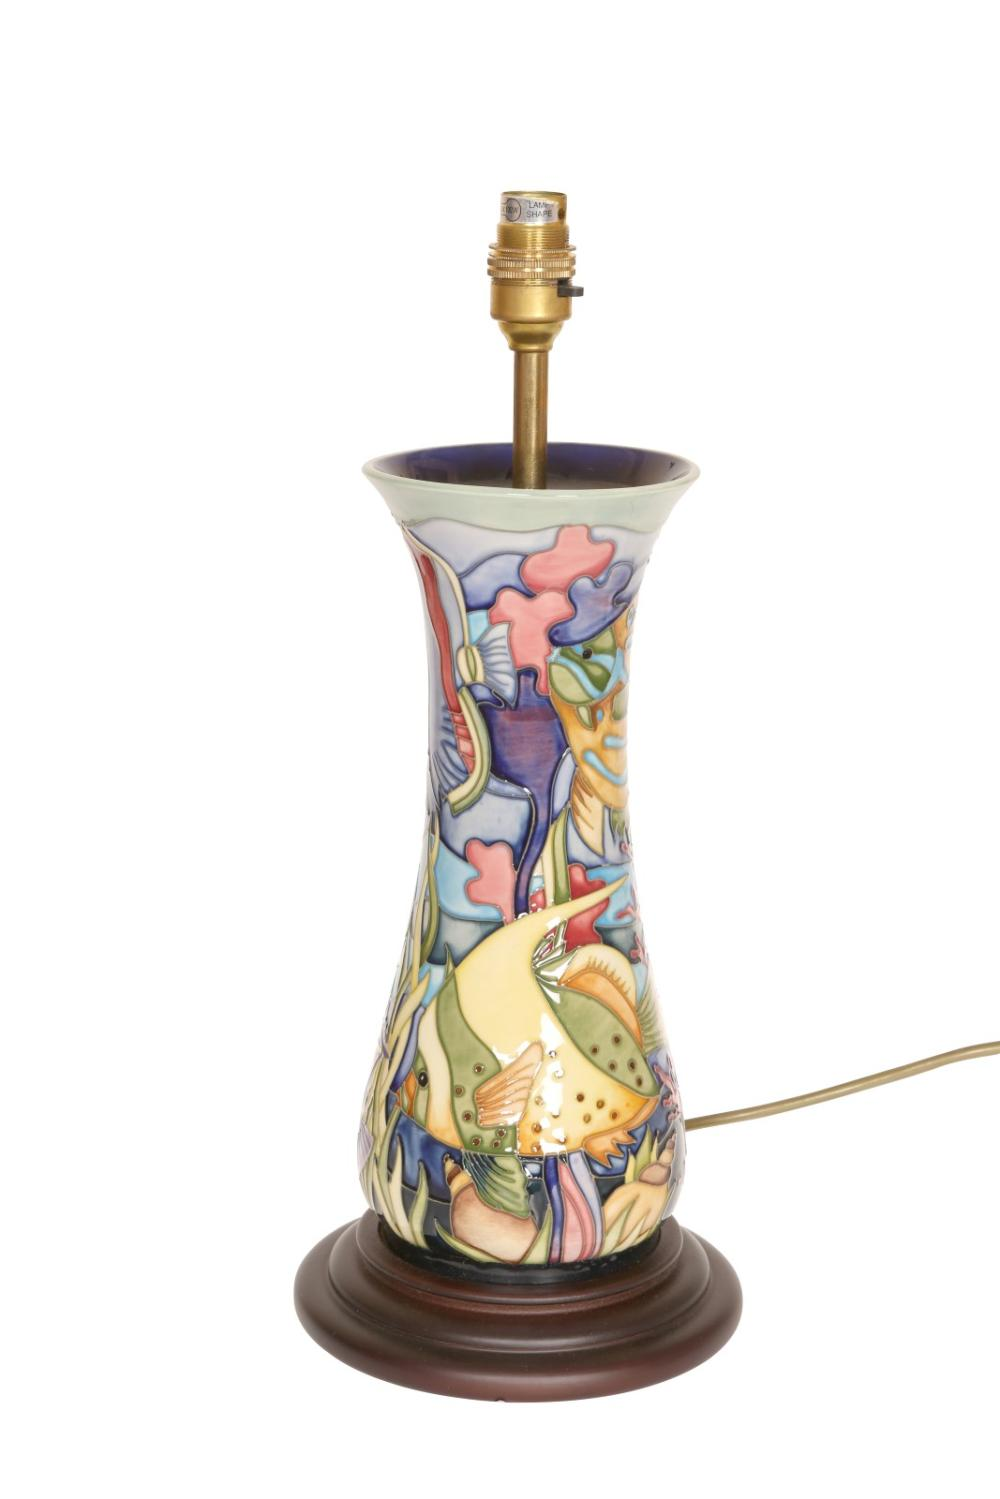 A moorcroft table lamp in the martinique pattern by jeanne a moorcroft table lamp in the martinique pattern by jeanne mcdougall firs aloadofball Choice Image